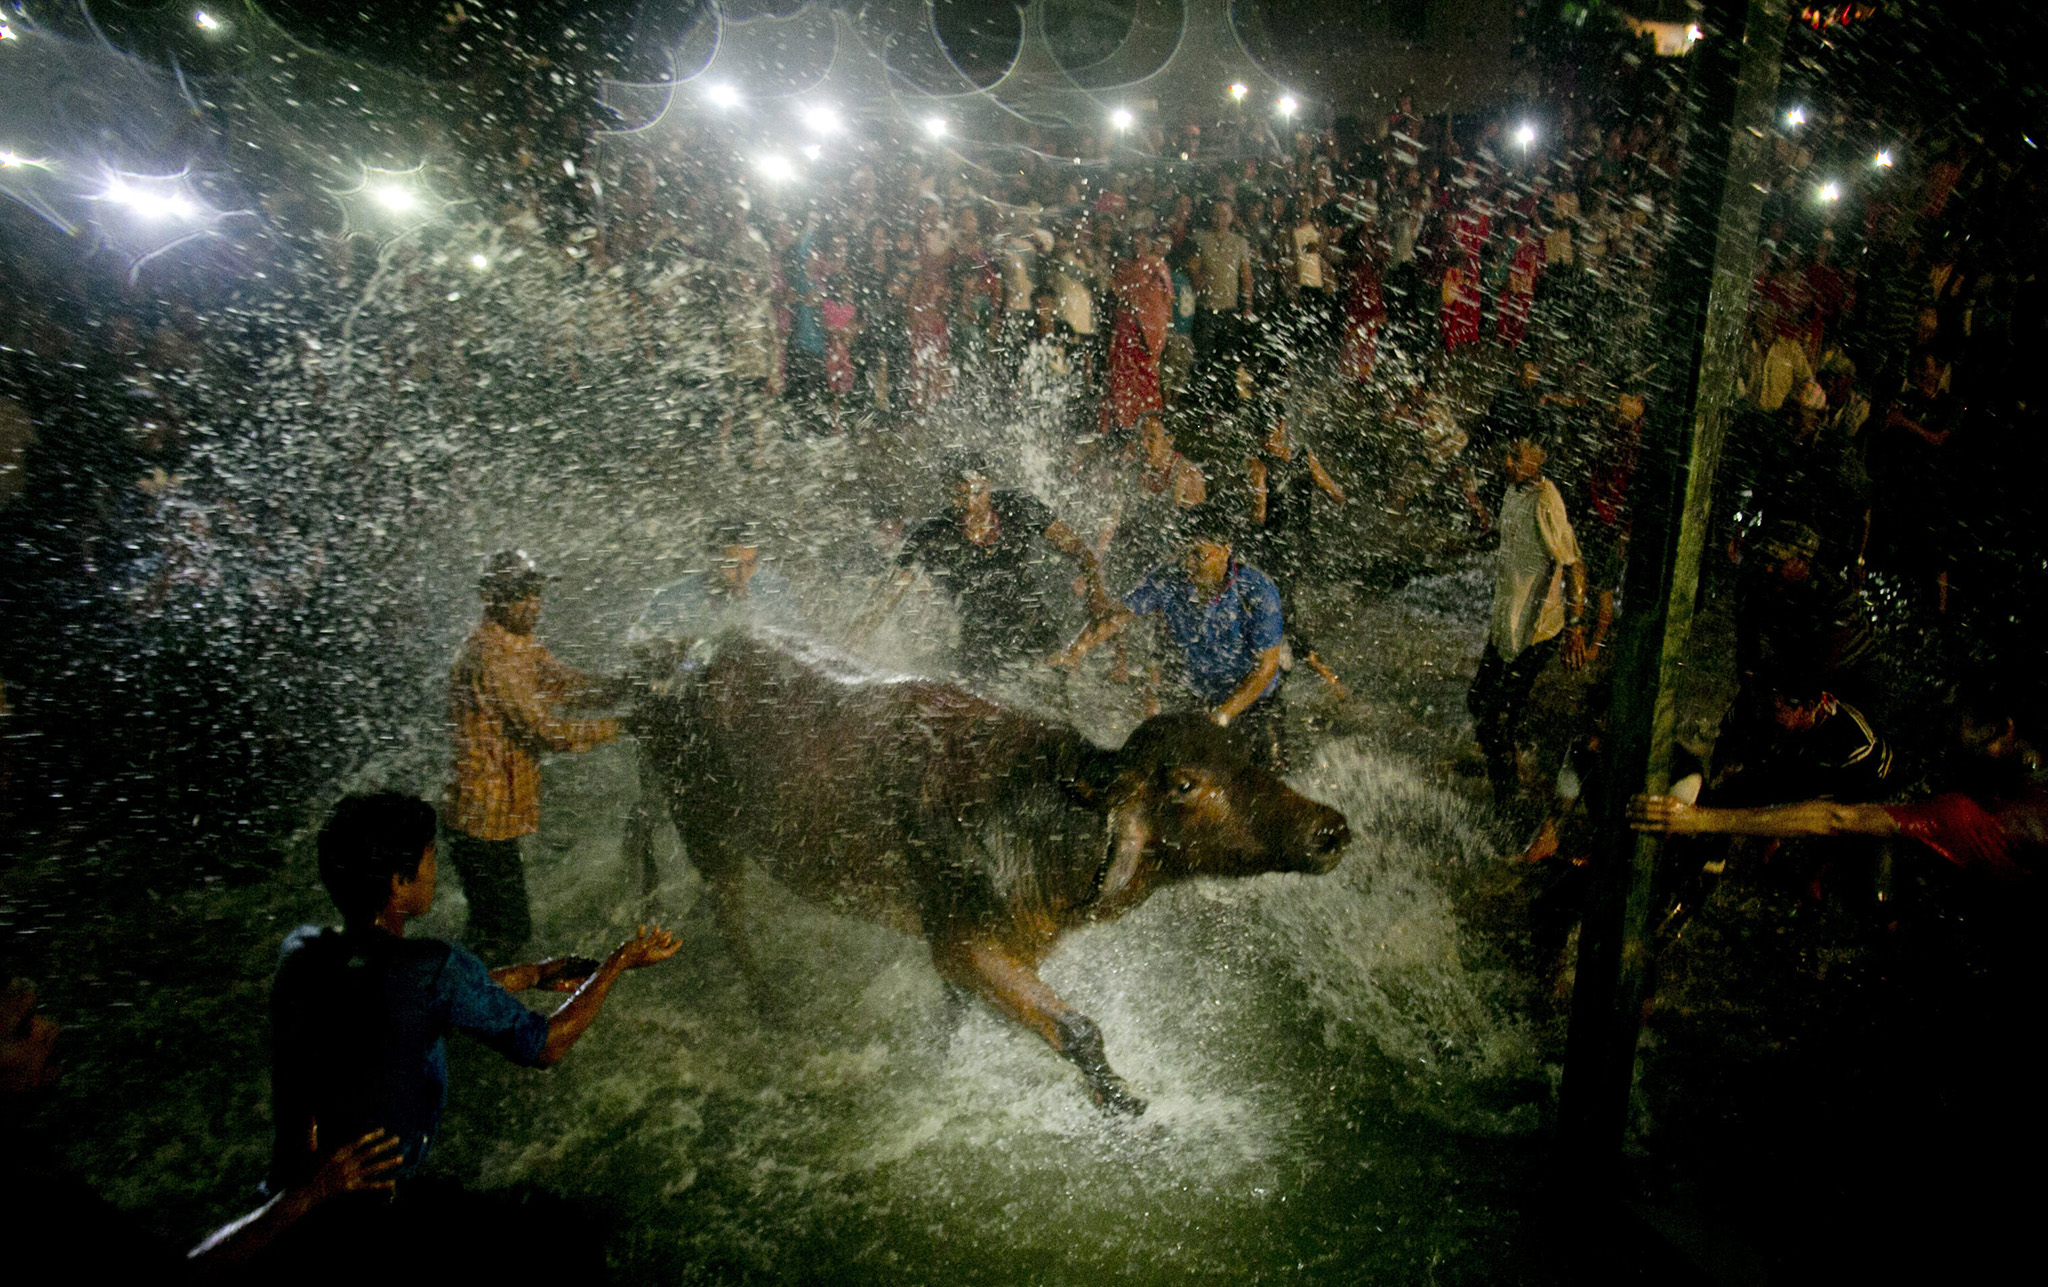 Hindu devotees splash a water buffalo with water from Hanumante River as part of rituals before it is sacrificed on the ninth day of Dashain Hindu Festival in Bhaktapur  Nepal, Monday, Oct. 10, 2016. The festival commemorates the slaying of a demon king by Hindu goddess Durga, marking the victory of good over evil. Animals are sacrificed at Hindu temples during this festival. (AP Photo/Niranjan Shrestha)